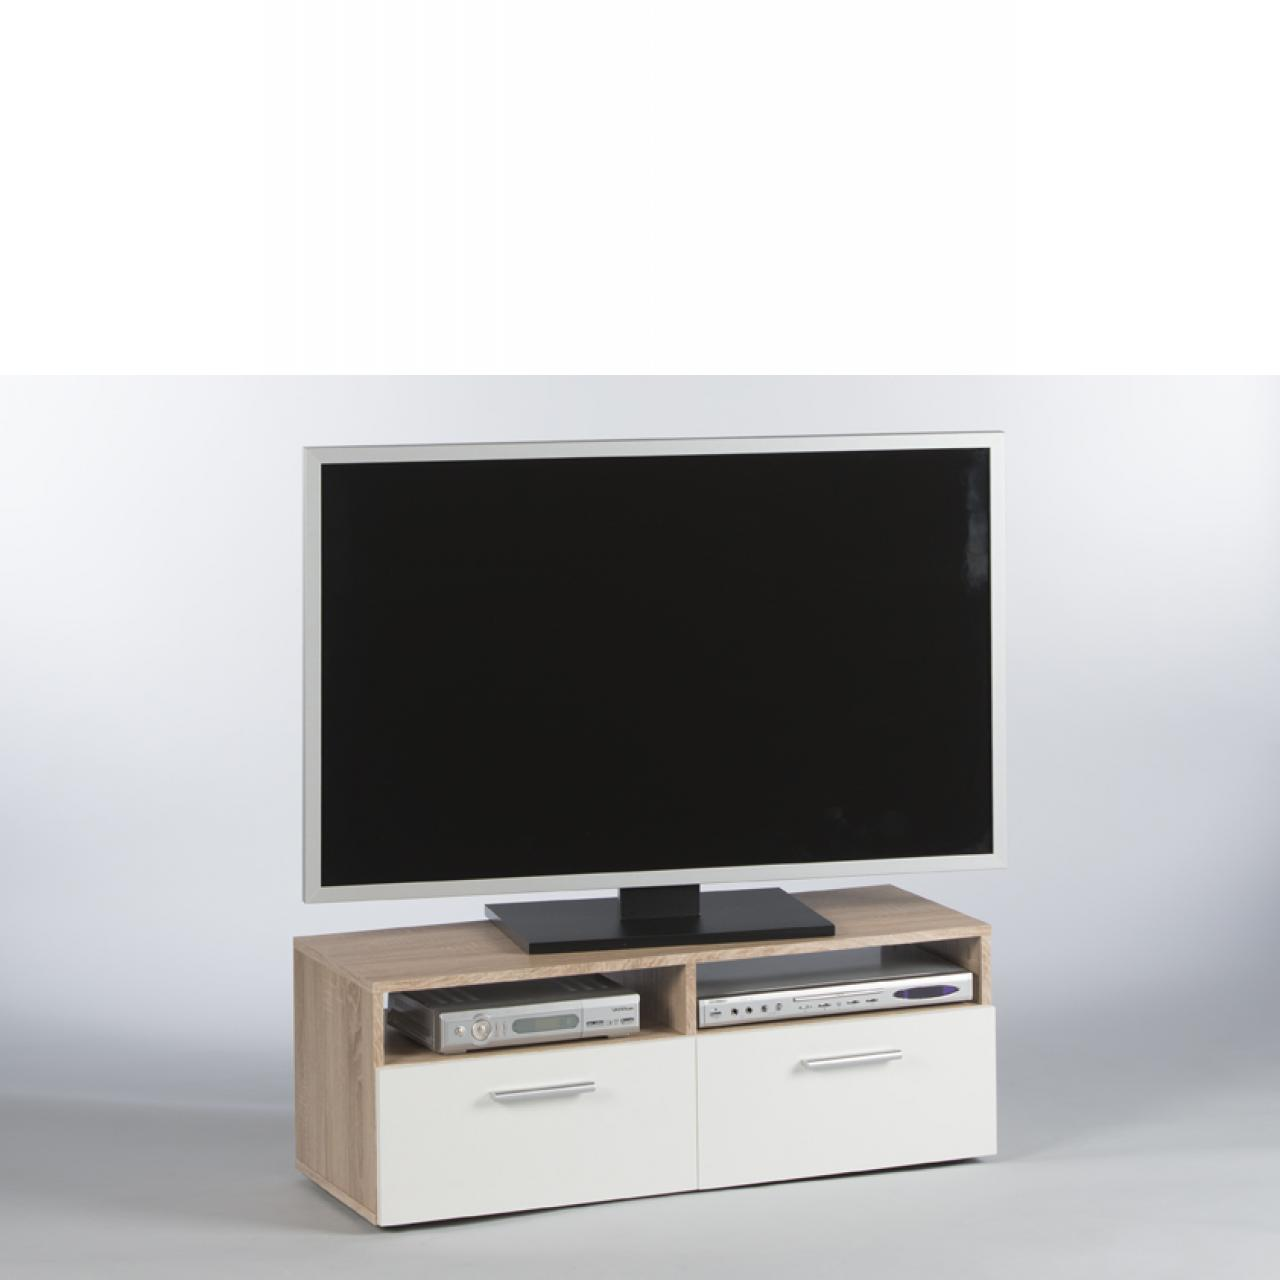 tv lowboard rana beim bel wohnen m bel j hnichen center gmbh. Black Bedroom Furniture Sets. Home Design Ideas